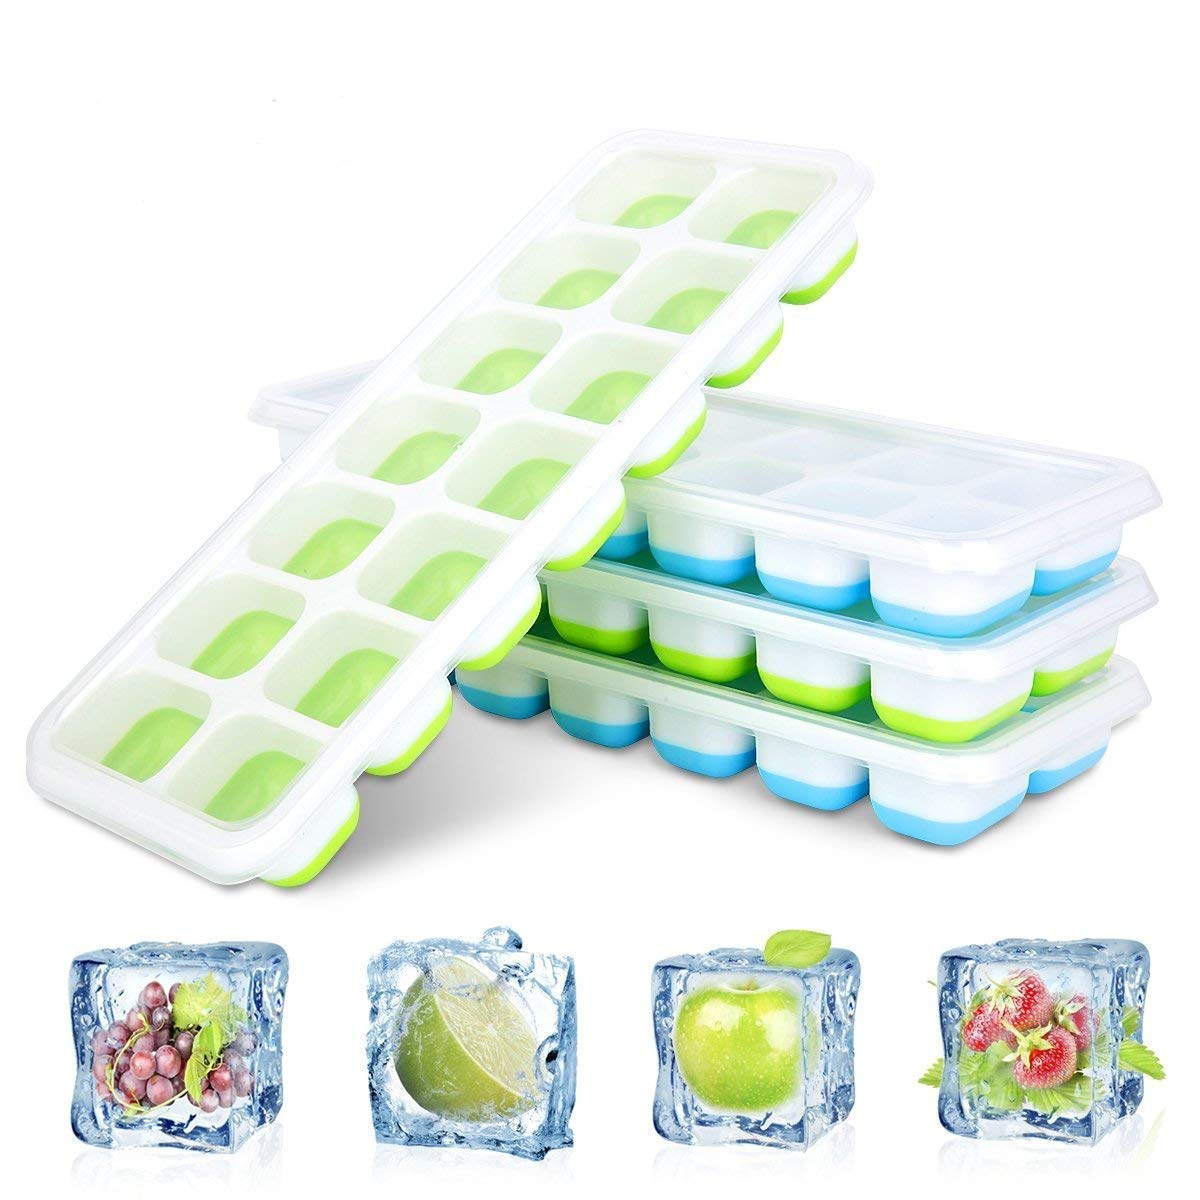 Tebery 4 Pack Ice Cube Tray, Easy Release Silicone Ice Cube Tray, No Spill, Stacking,14 Ice Molds, Easy to Use and Dishwasher Safe, 2 Blue 2 Green